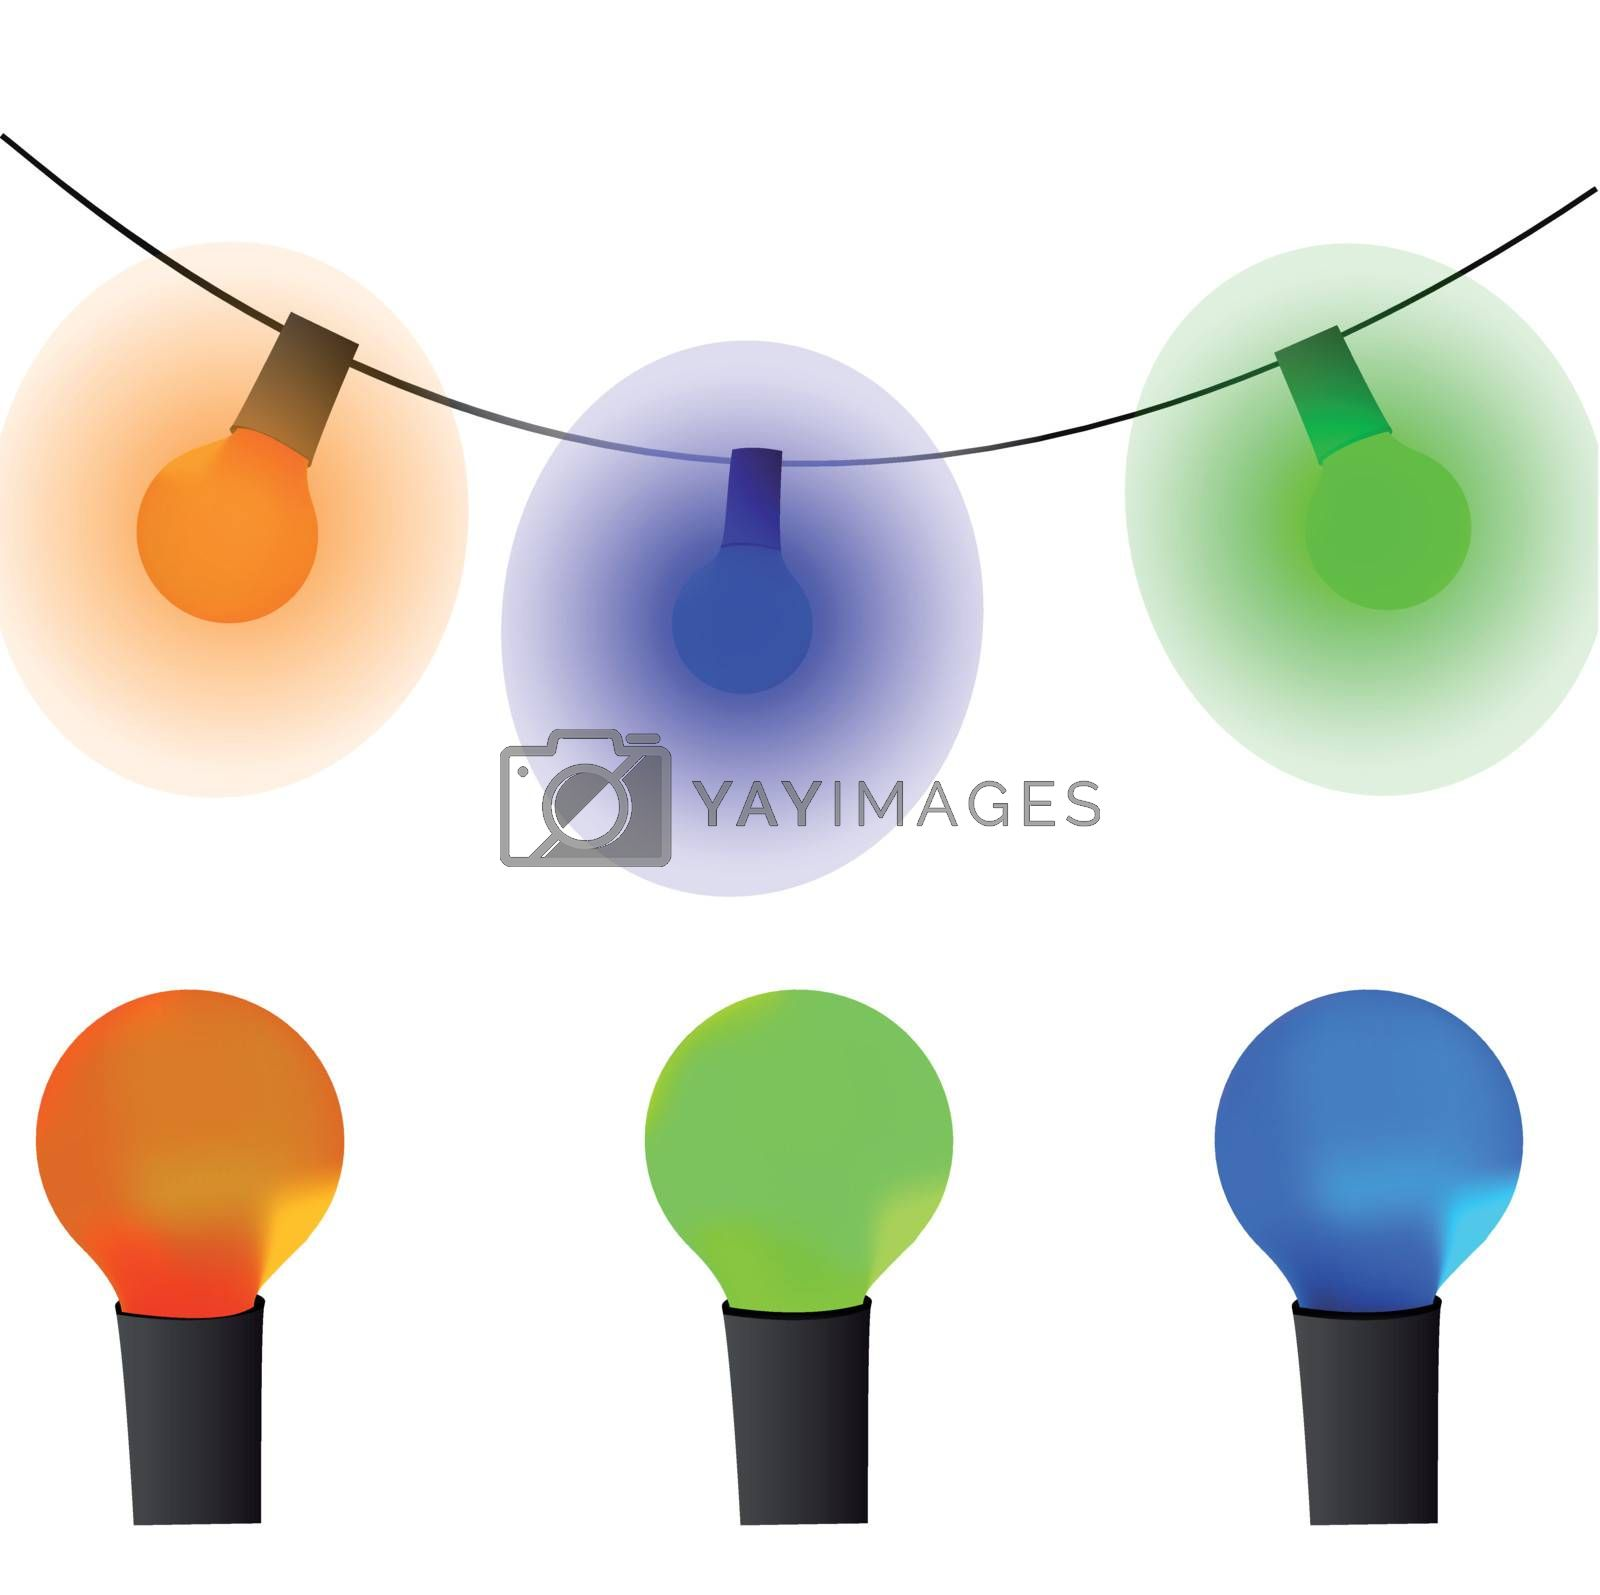 Old lamp garland vector wallpaper by Diversphoto